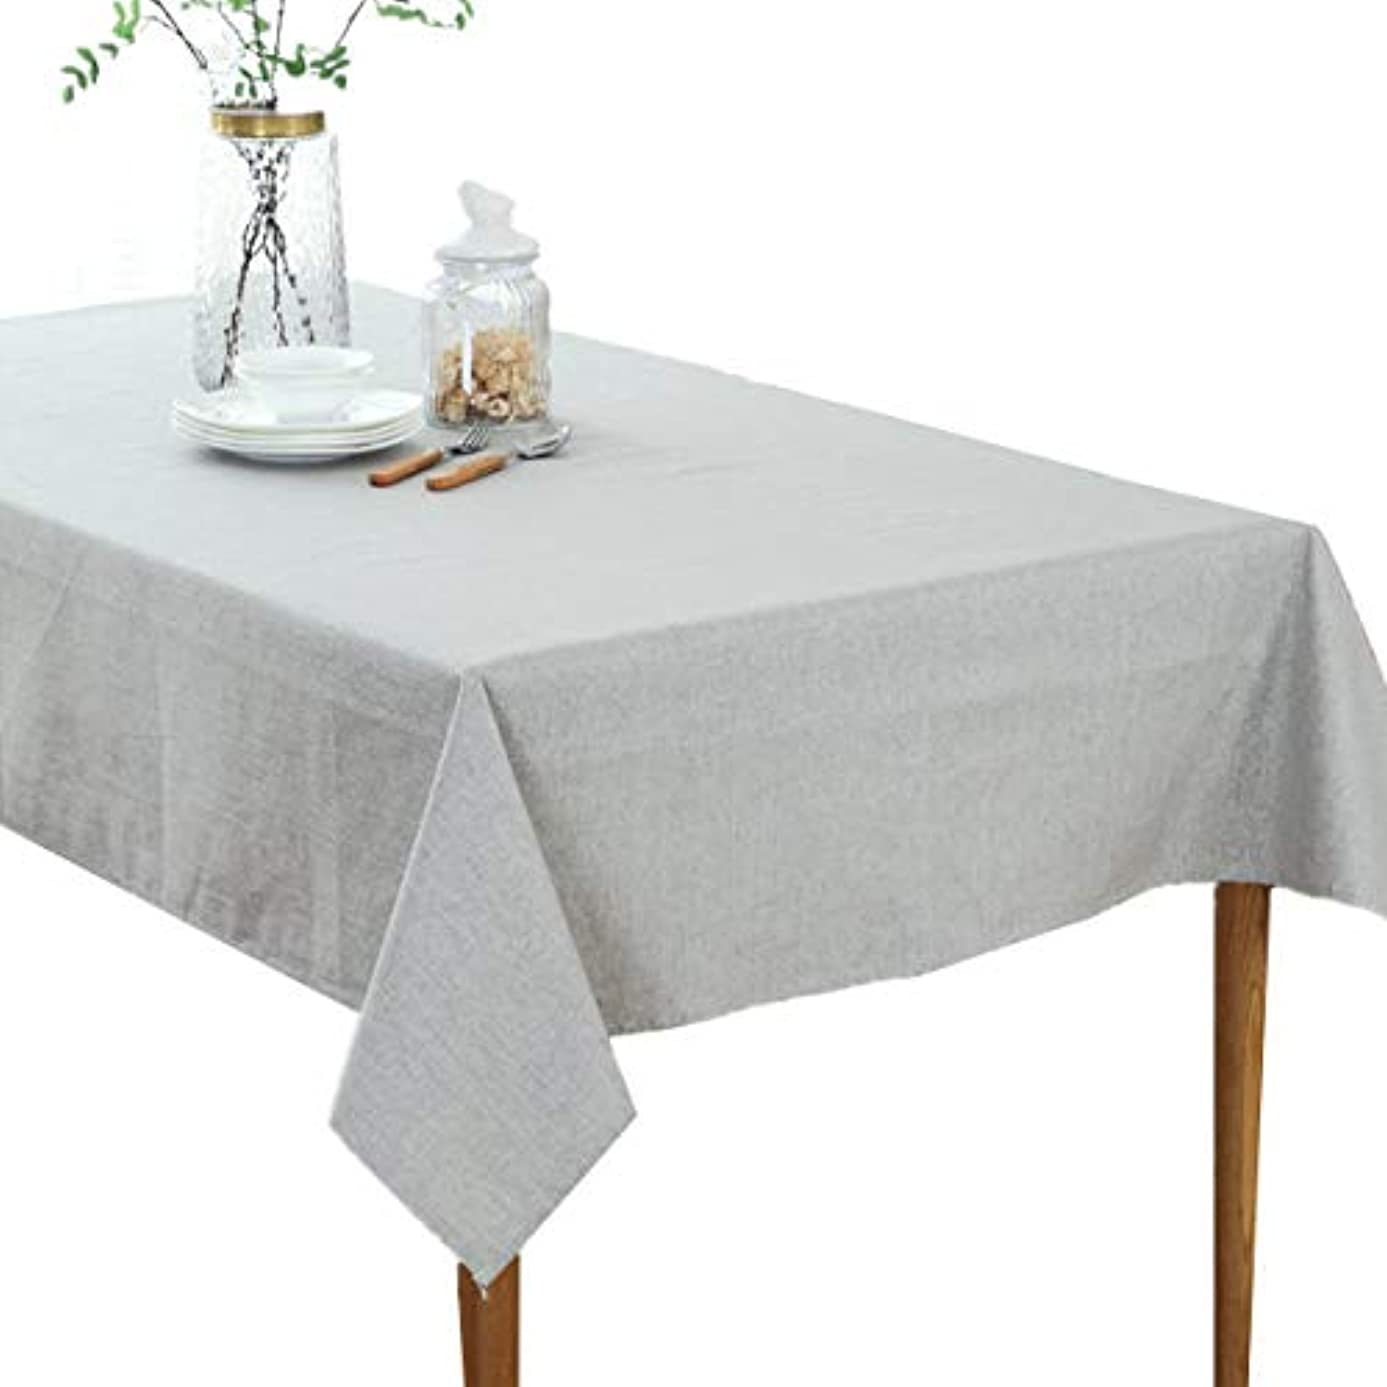 Bettery Solid Cotton Linen Tablecloth Simple Style Pure Color Rectangular Table Cover for Dining Room Kitchen Decoration 47 x 63 inches Gray